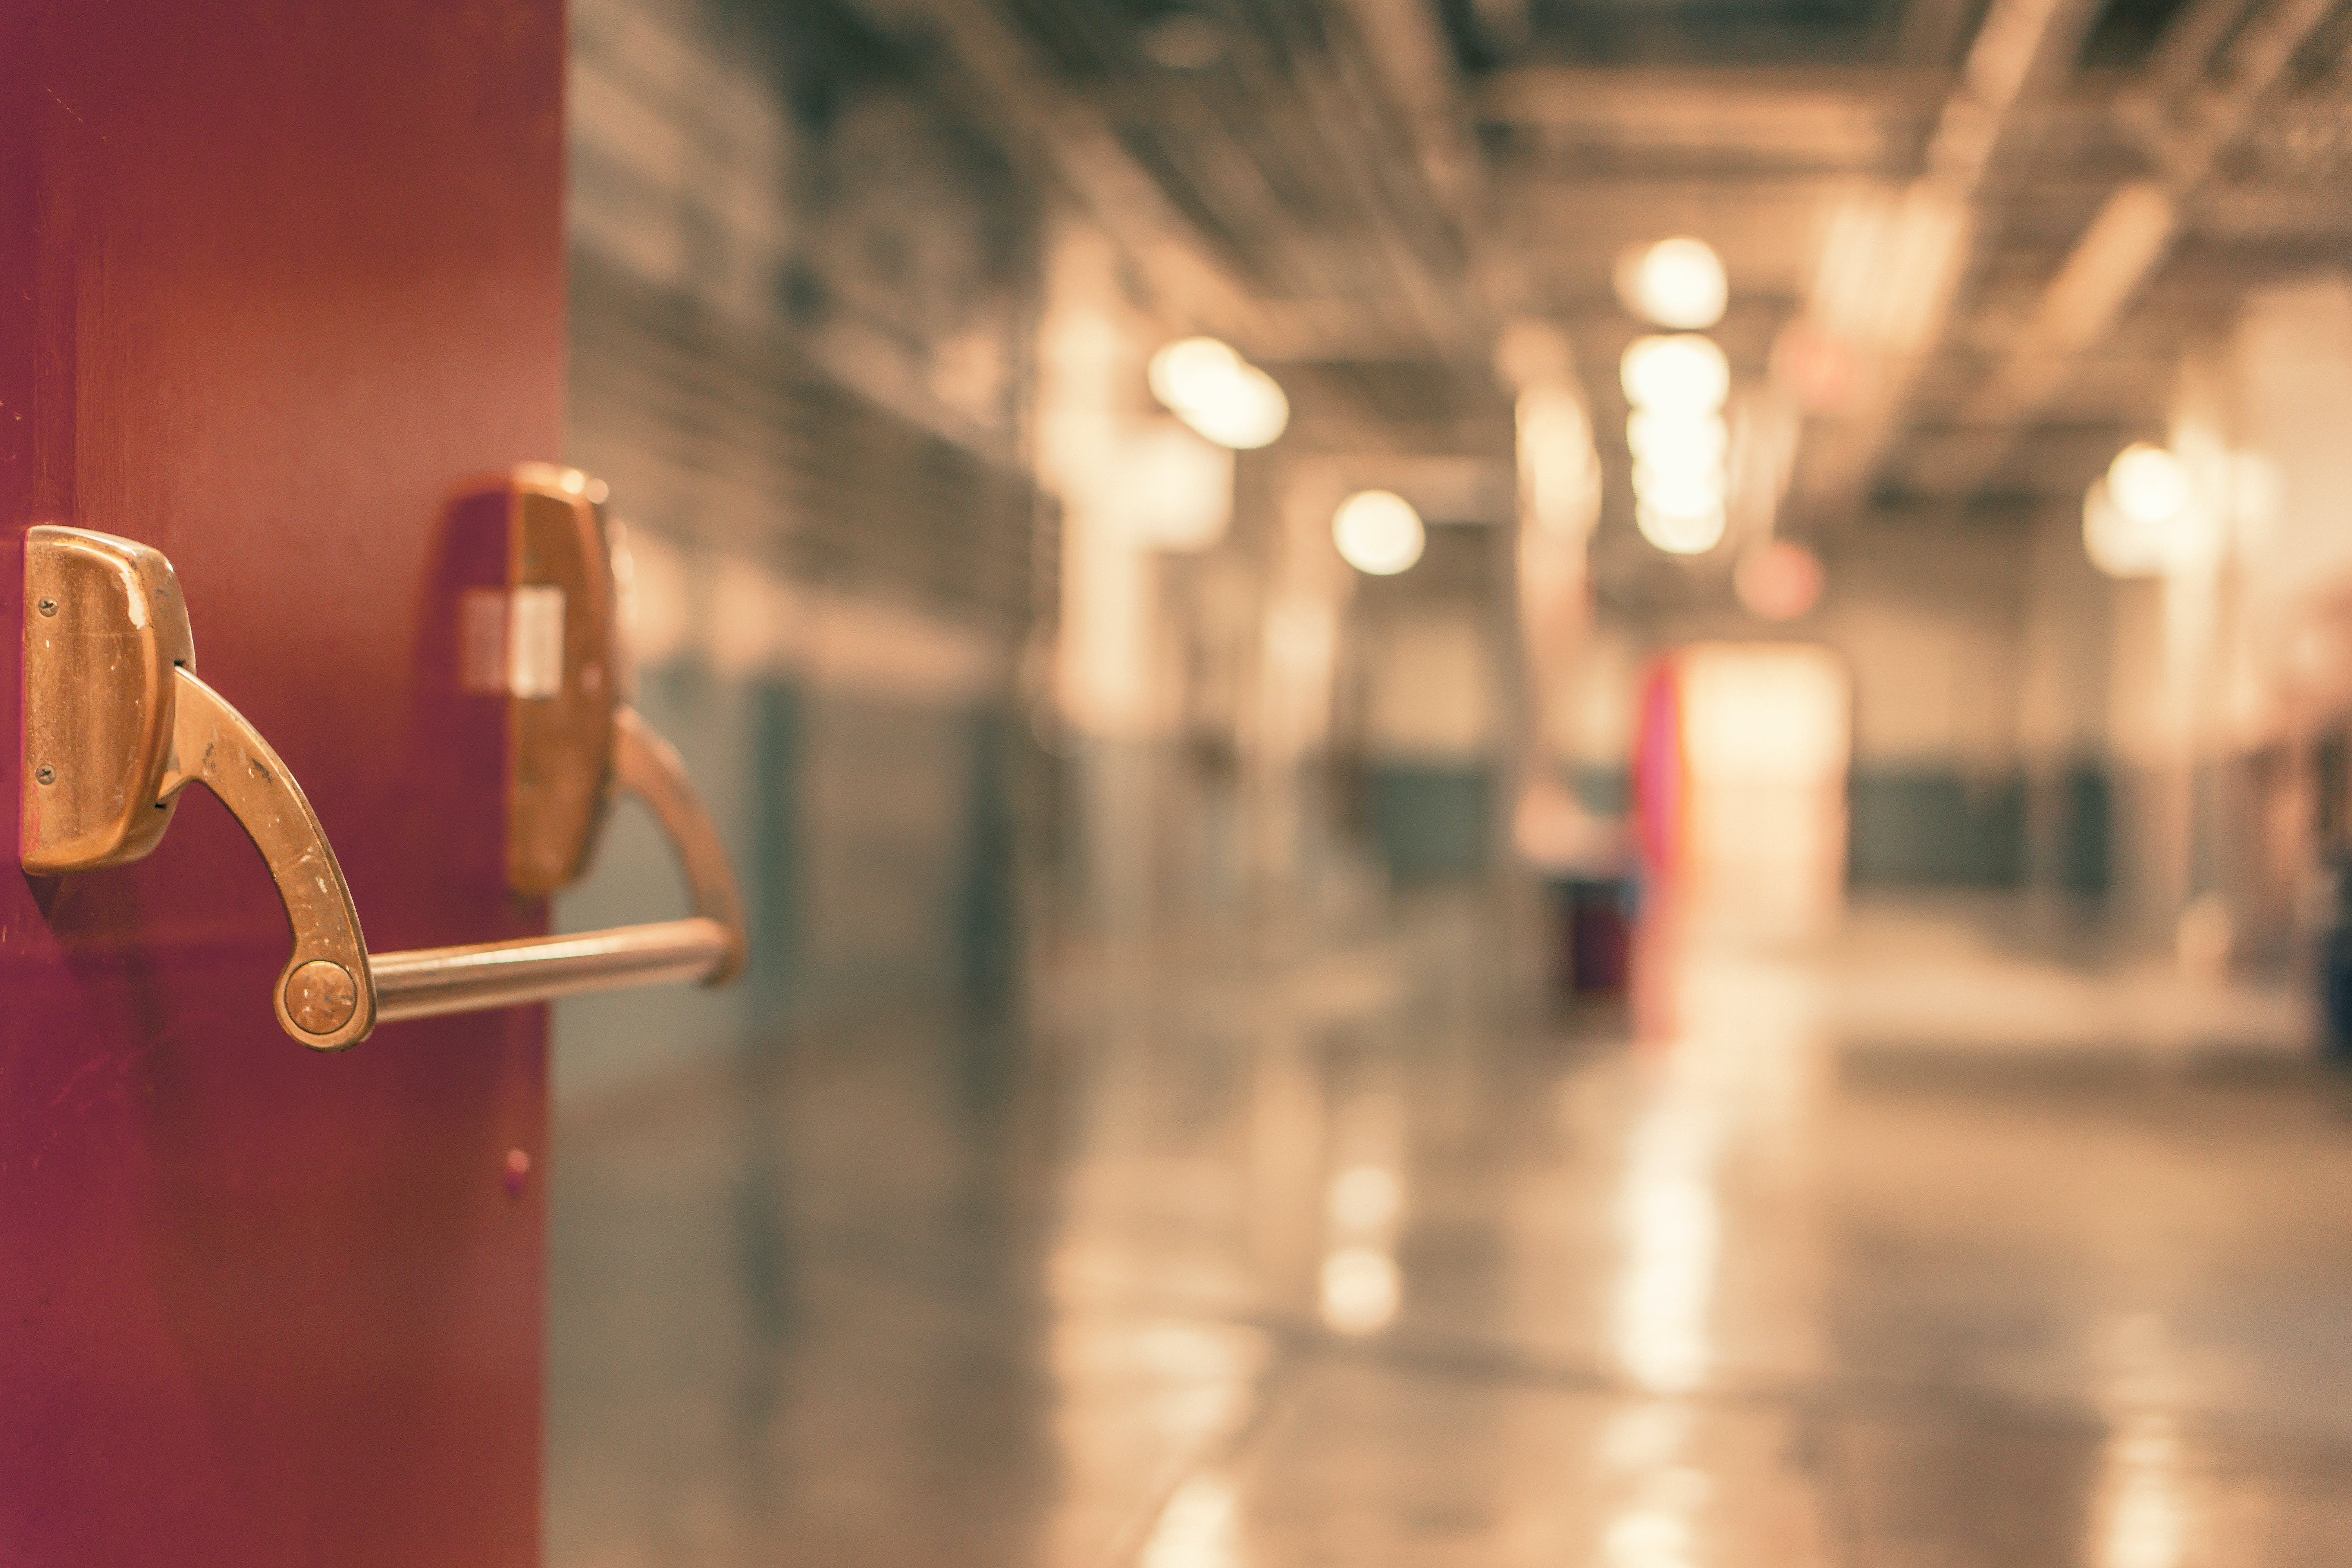 A blurry picture of a generic school hallway with lockers